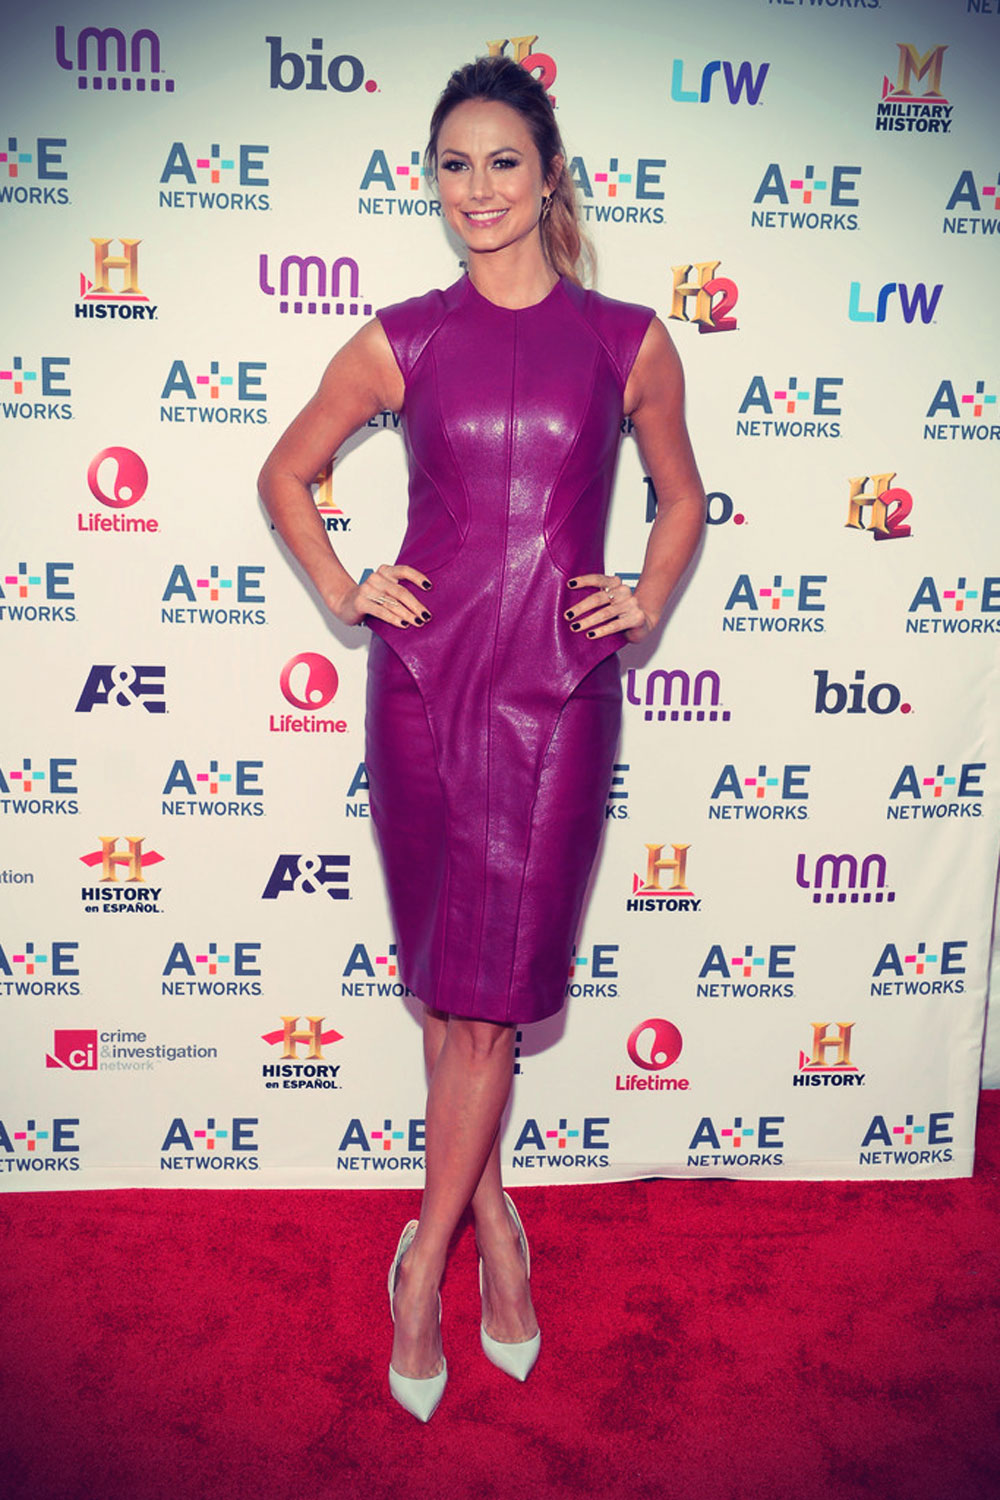 Stacy Keibler attends A+E Networks 2013 Upfront